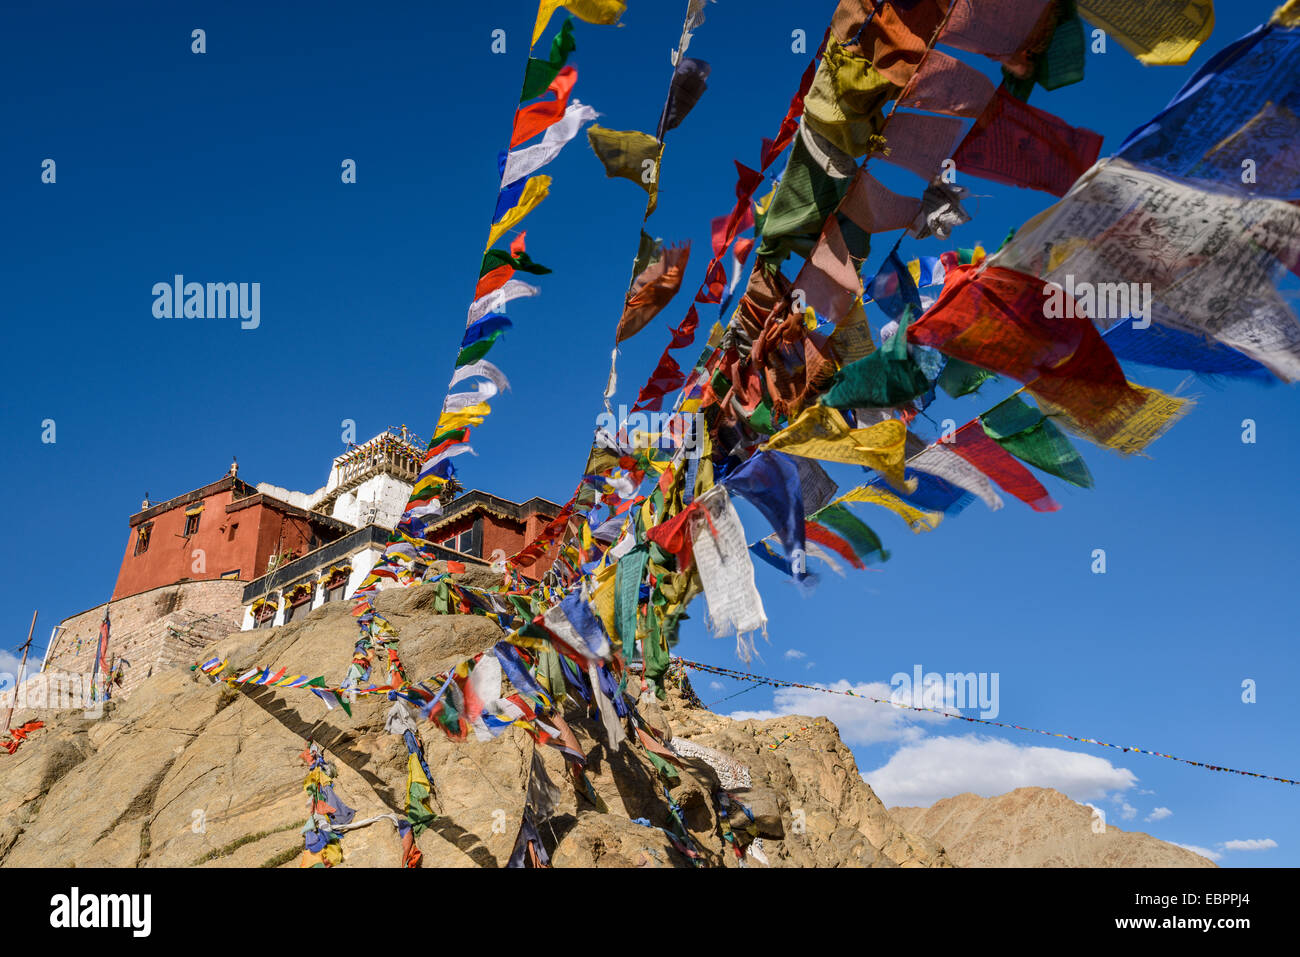 Prayer flags at Namgyal Tsemo Monastery in Leh, Ladakh, Himalayas, India, Asia Stock Photo